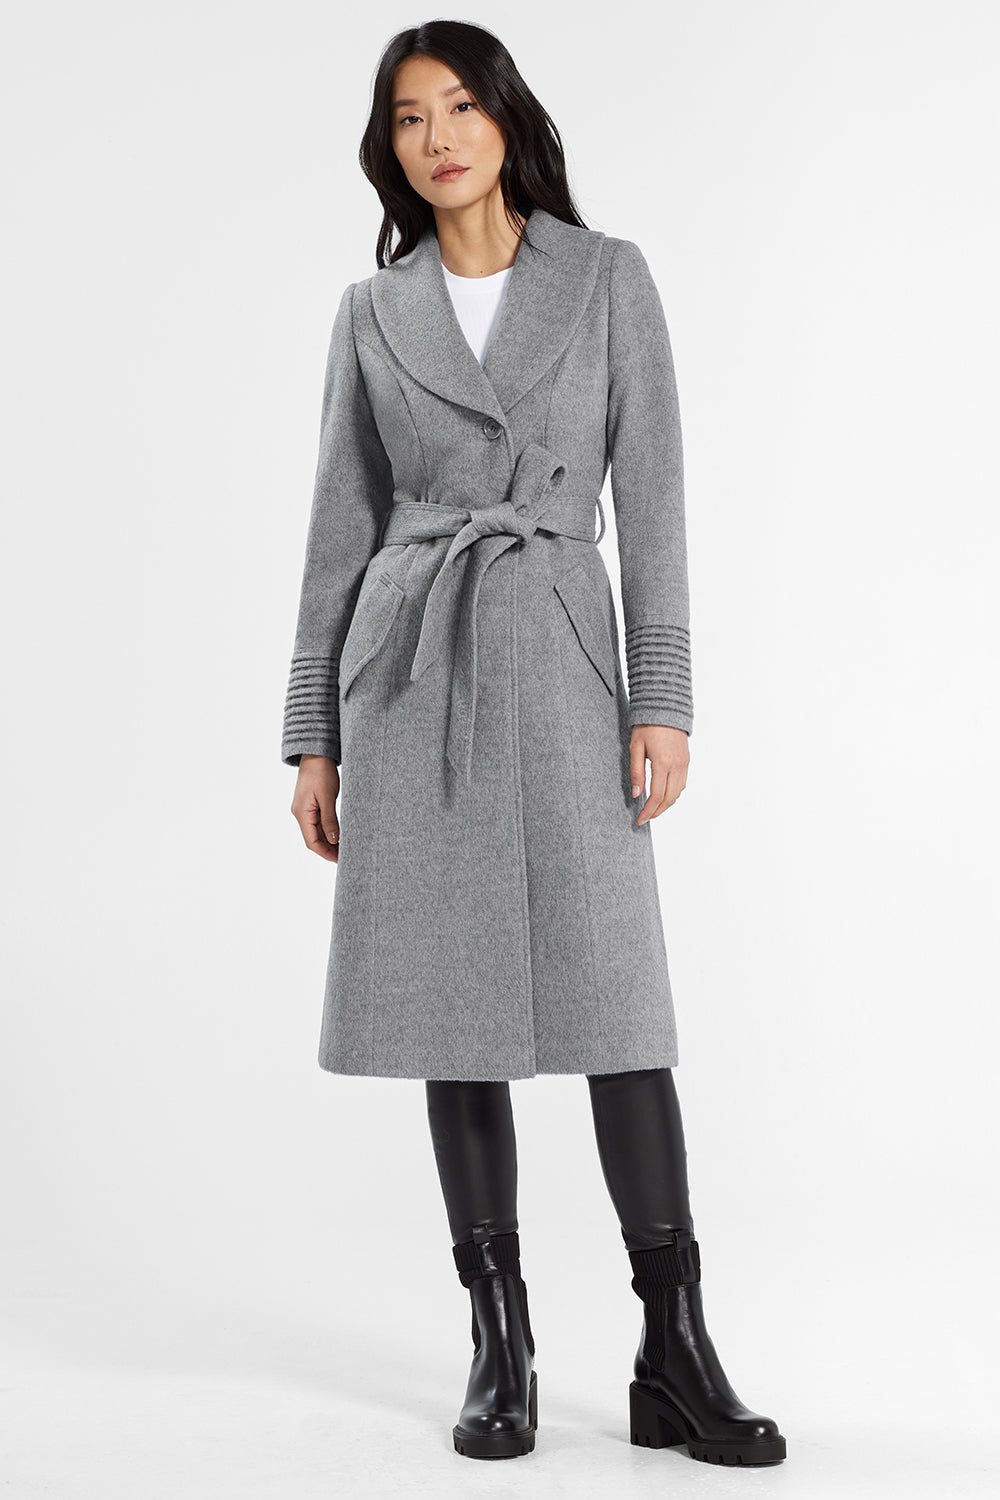 Sentaler Classic Long Coat with Shawl Collar featured in Baby Alpaca and available in Shale Grey. Seen from front.